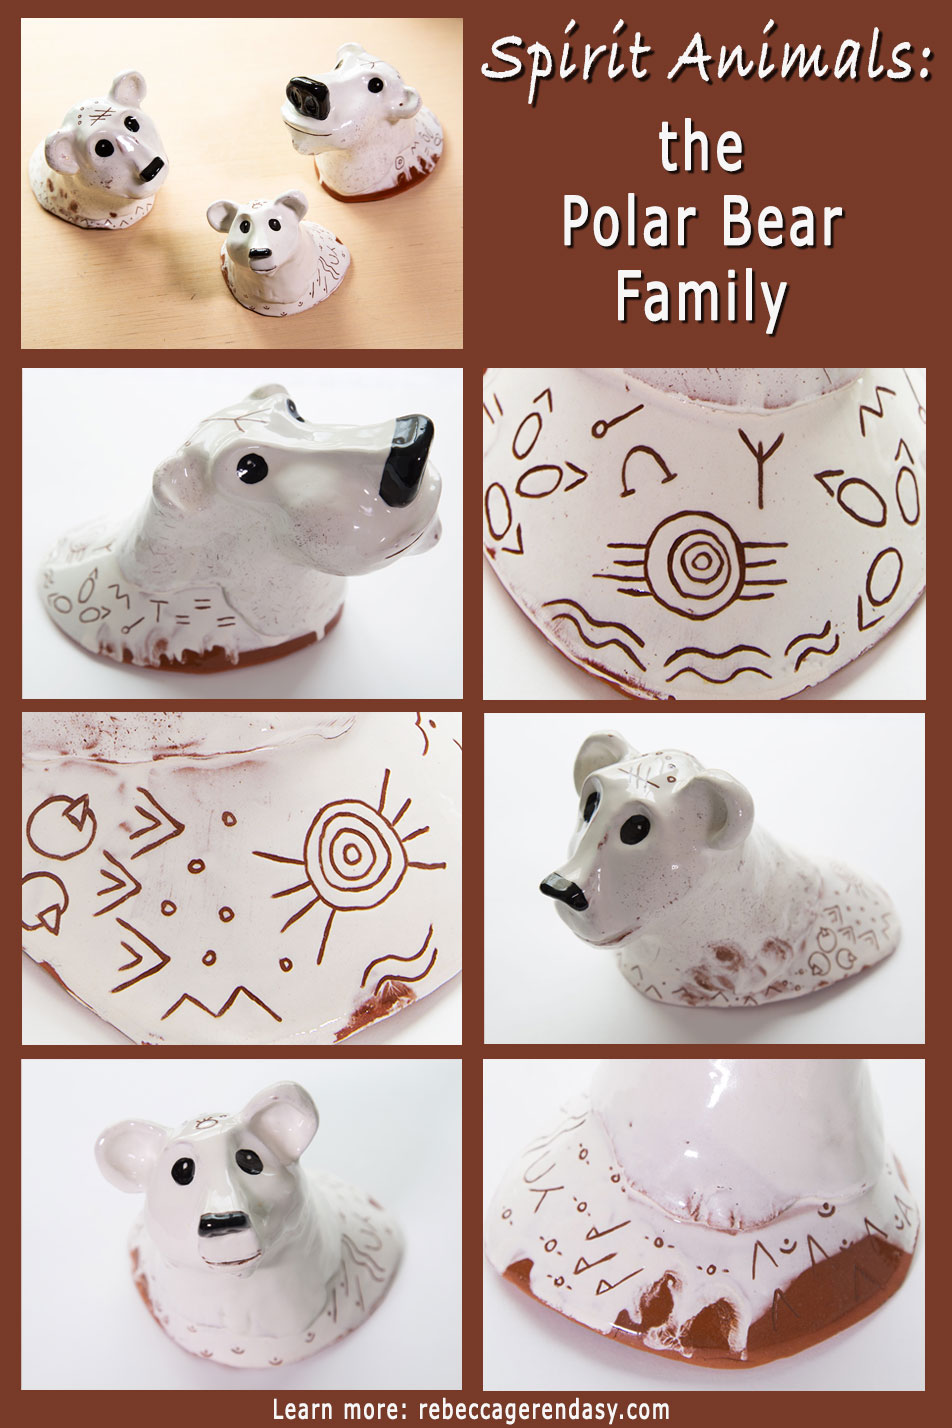 The Polar Bear Family is from the Spirit Animal series. Decorated in Shamanistic and Aboriginal symbols, Hubert (papa bear) is the hunter/leader, Jane (mama bear) is the Spiritual healer, and Angie (baby bear) is pure and full of possibilities.Each ceramic sculpture is hand-built from red clay and decorated with sgraffito marks through the white slip.